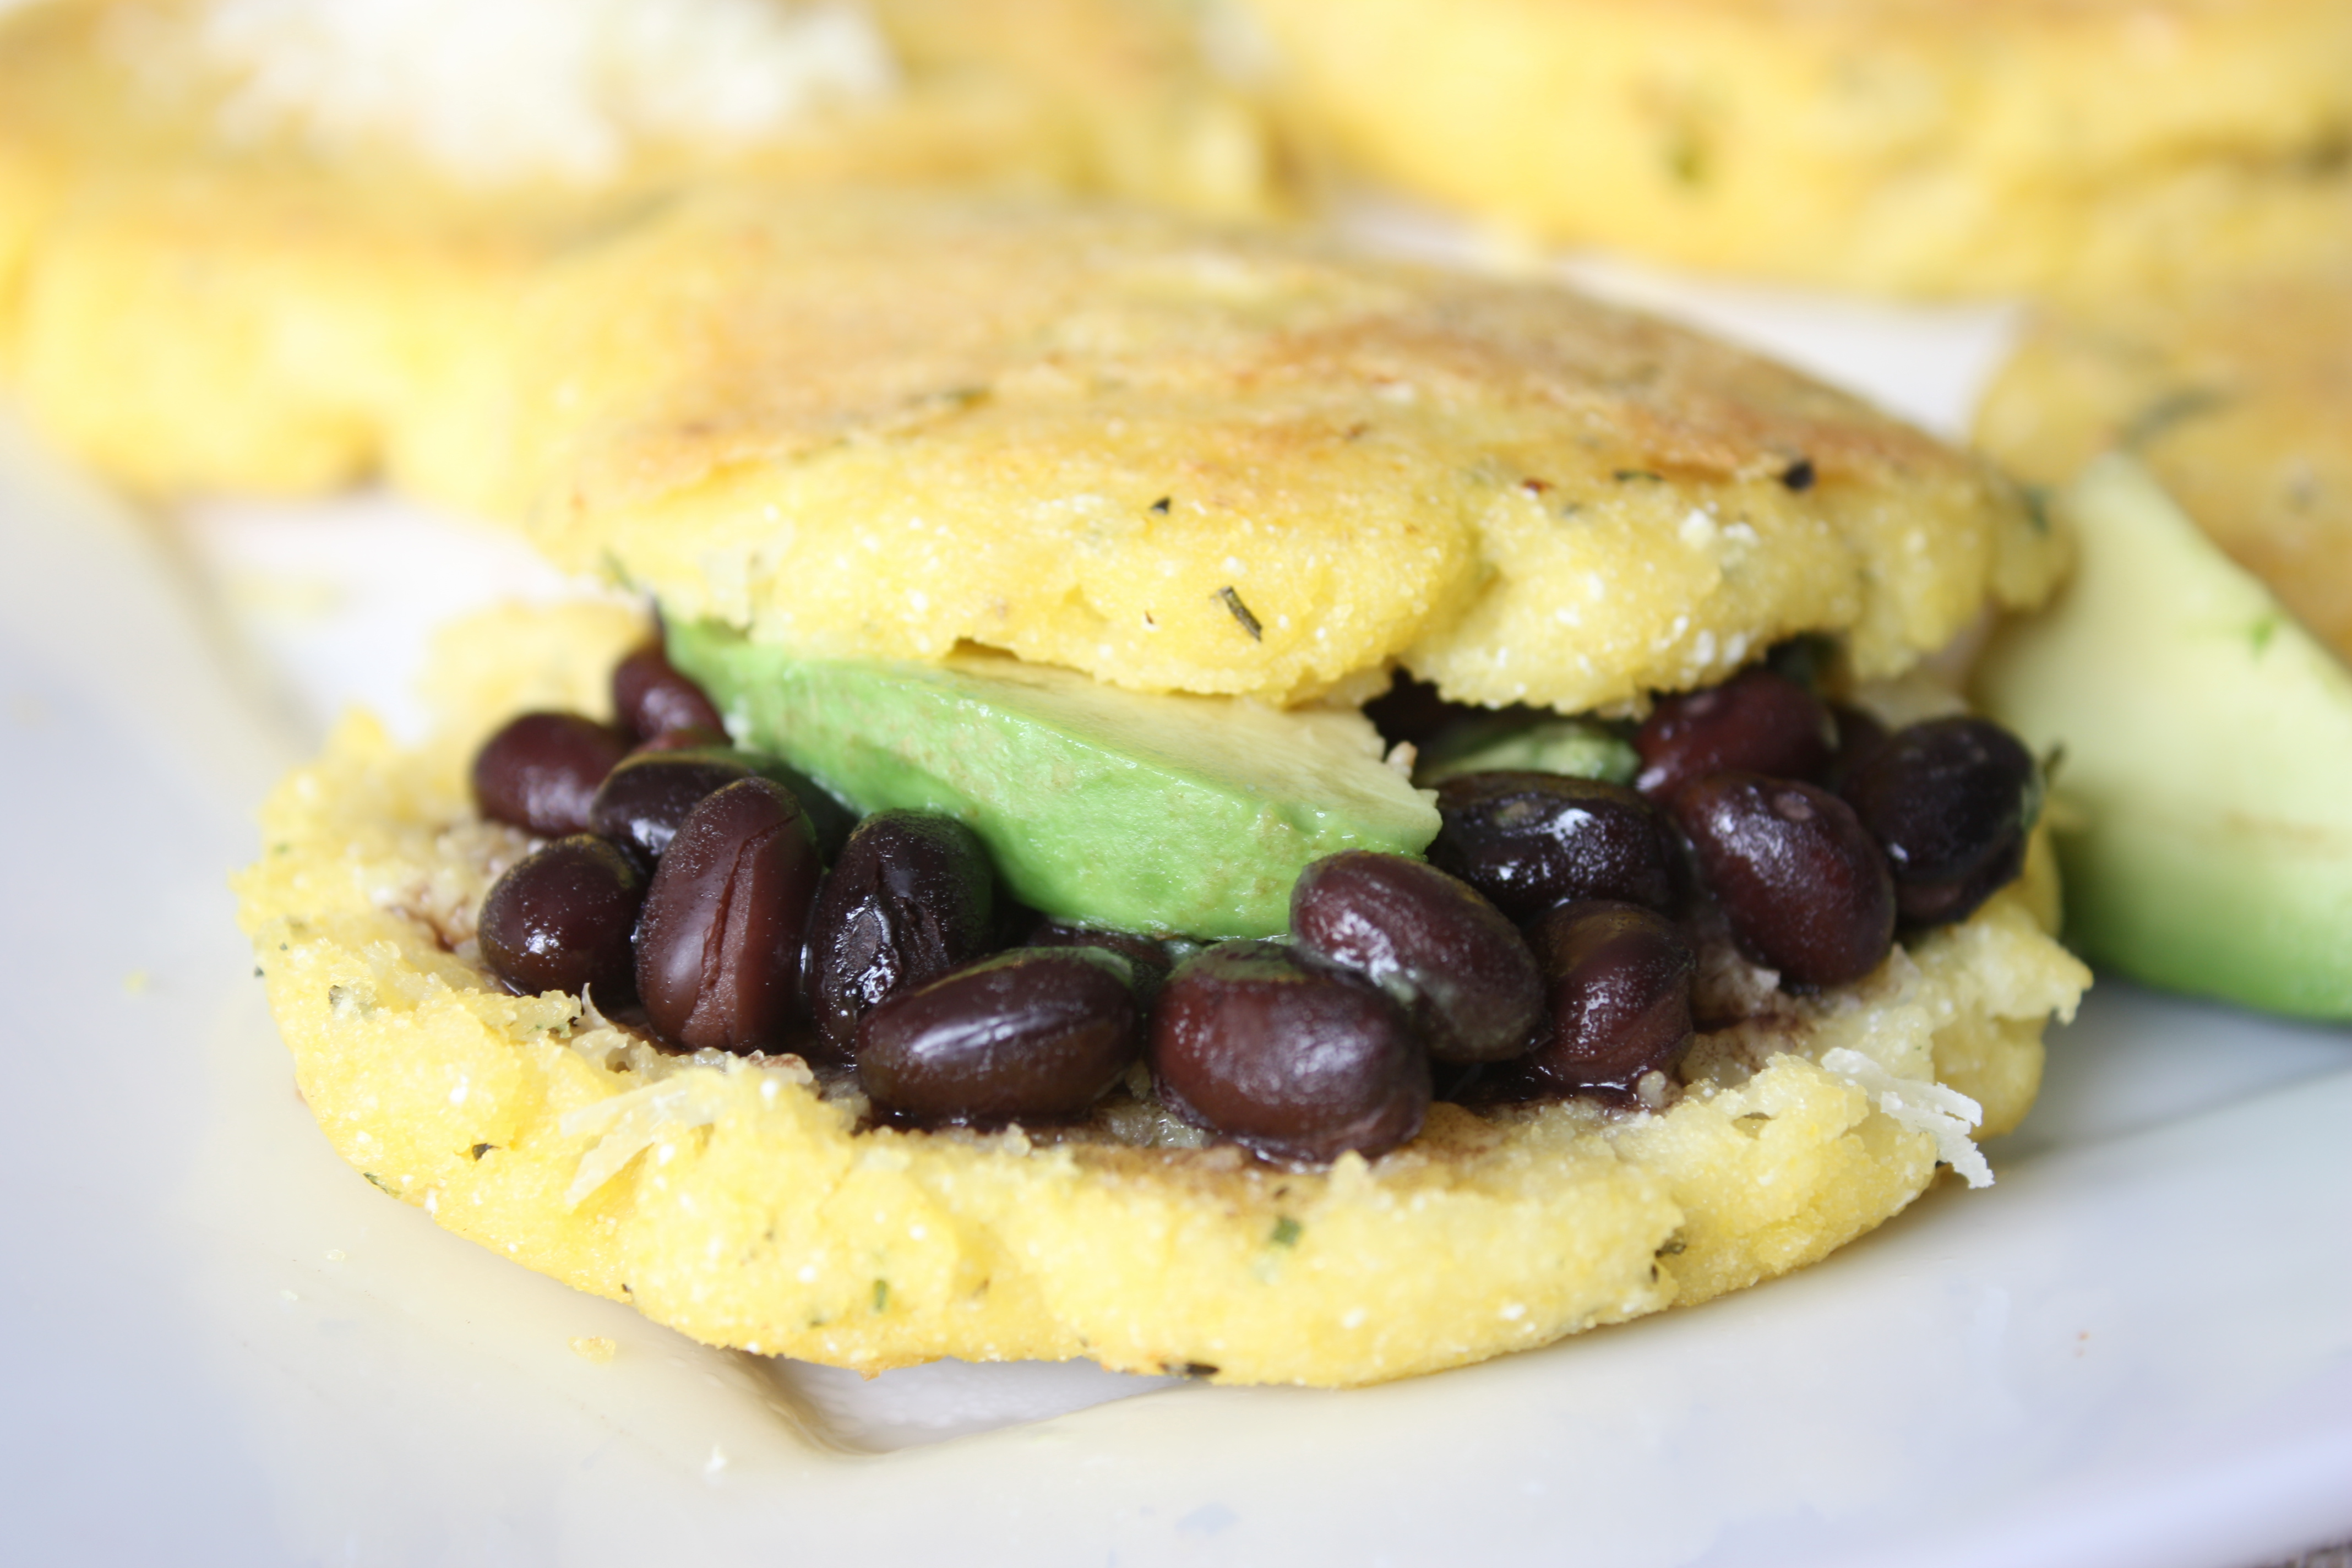 Arepas (ah-RAY-pahs) are half-inch thick corn cakes that are an ...